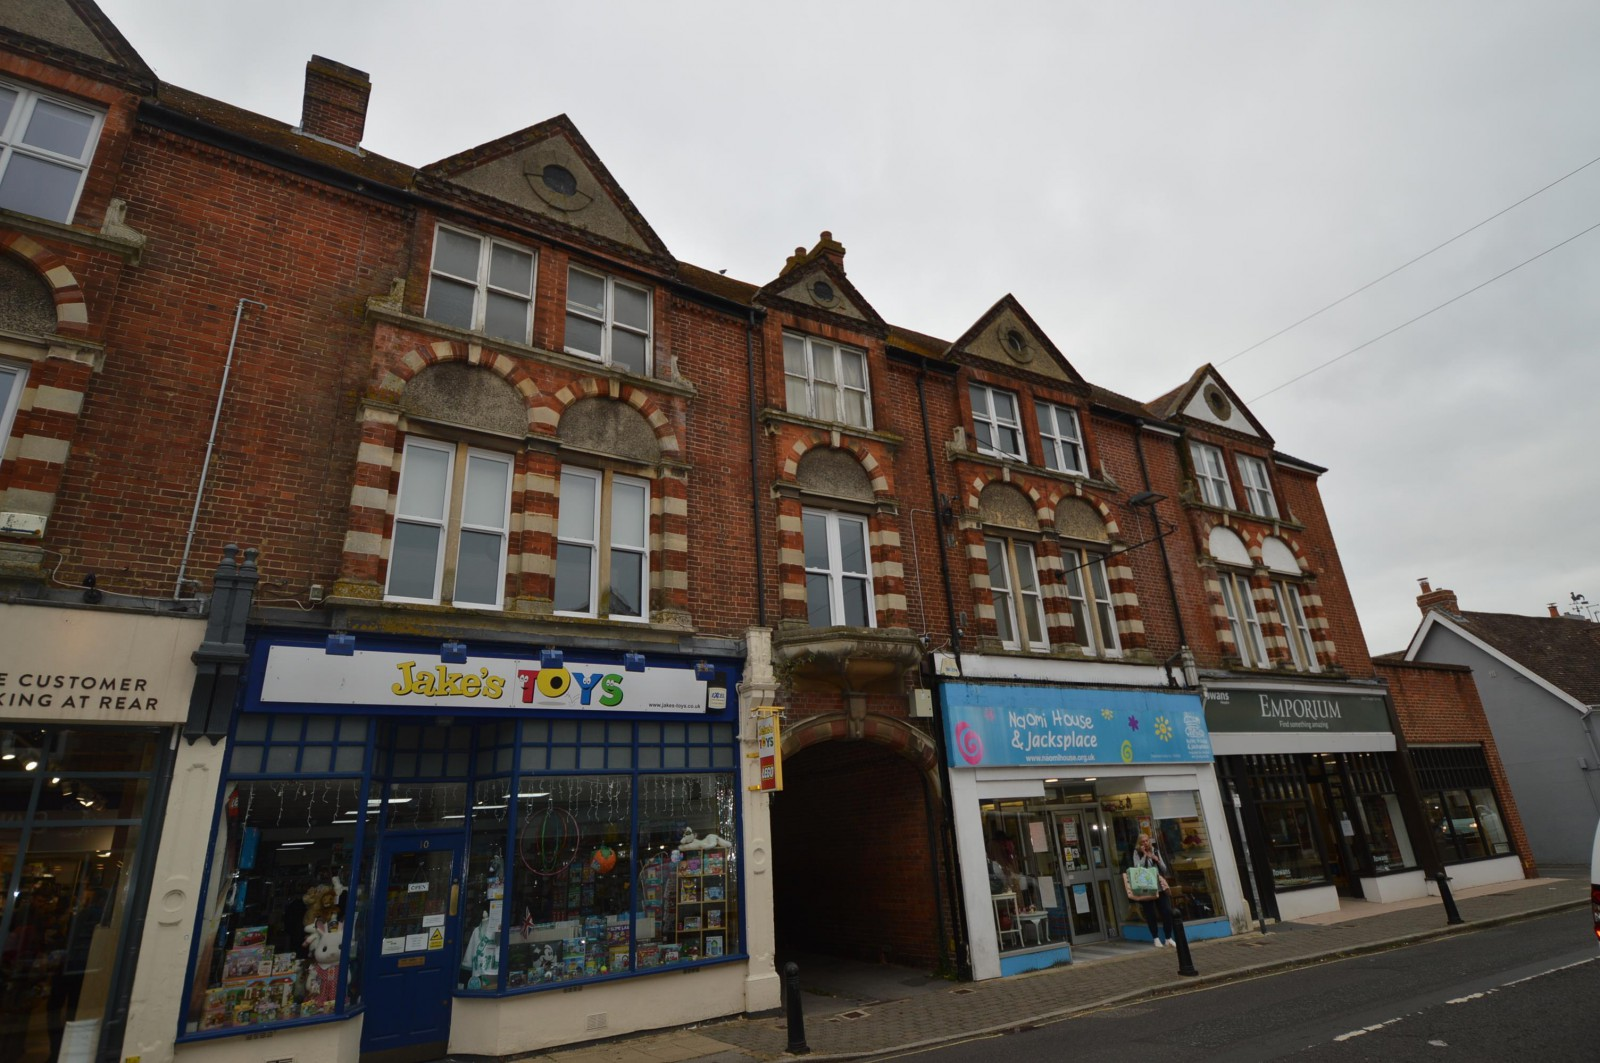 Front Property to Let in Petersfield (Main)